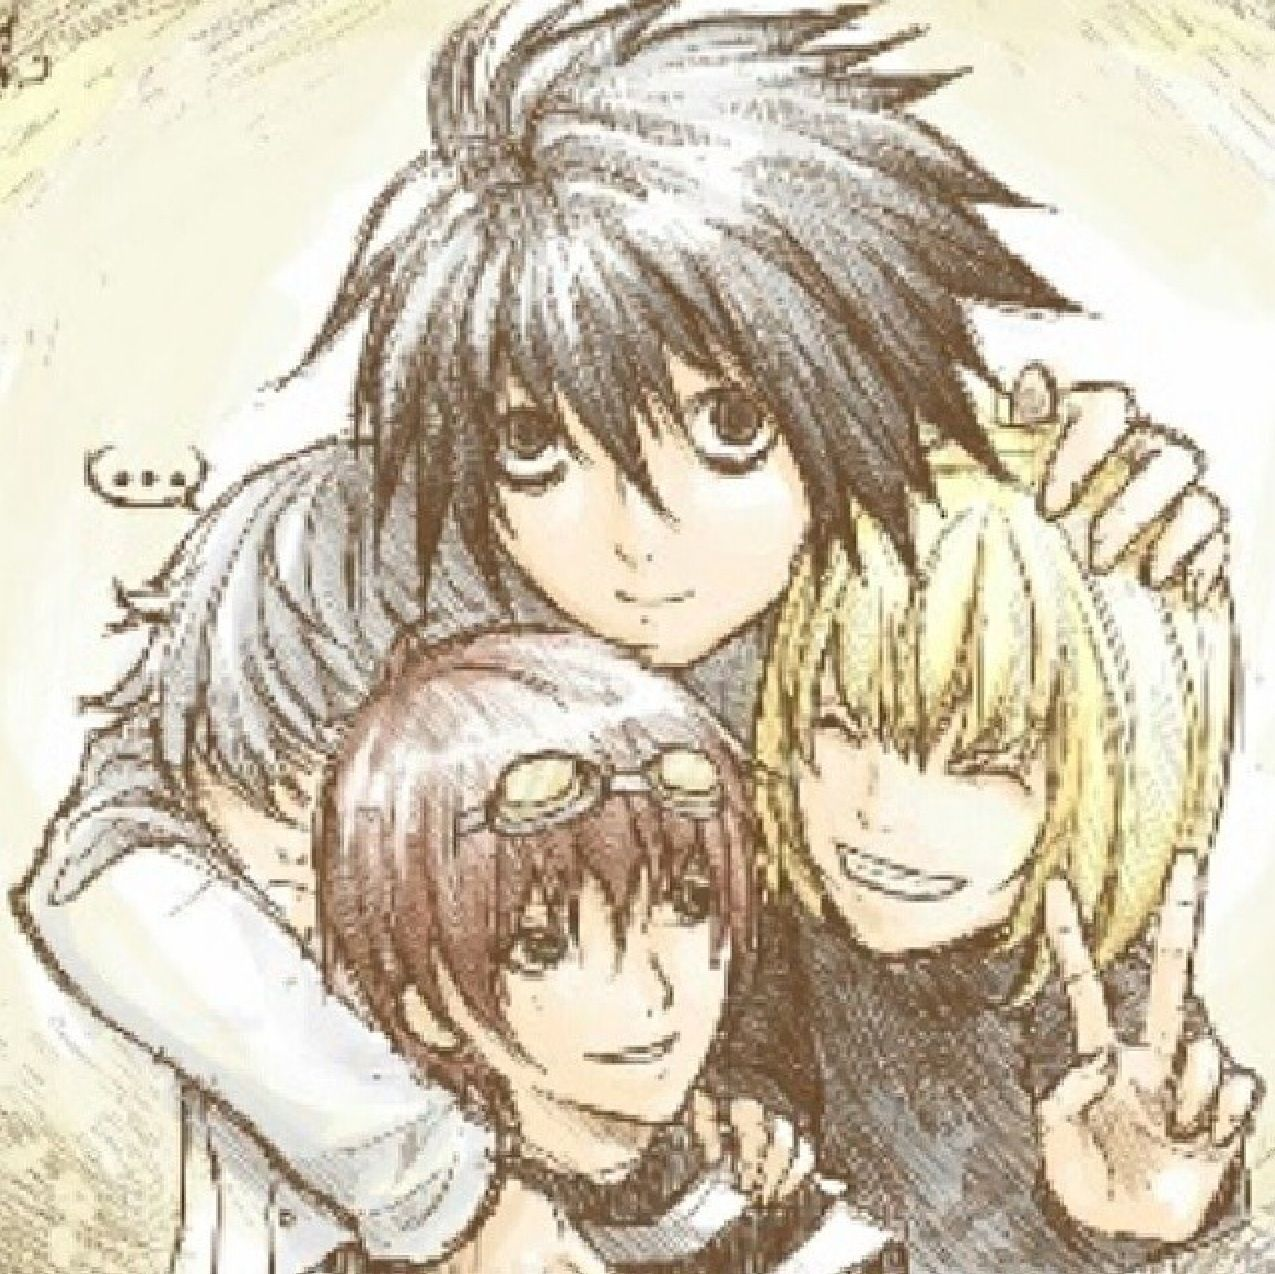 L, Near, Mello, and Matt growing up